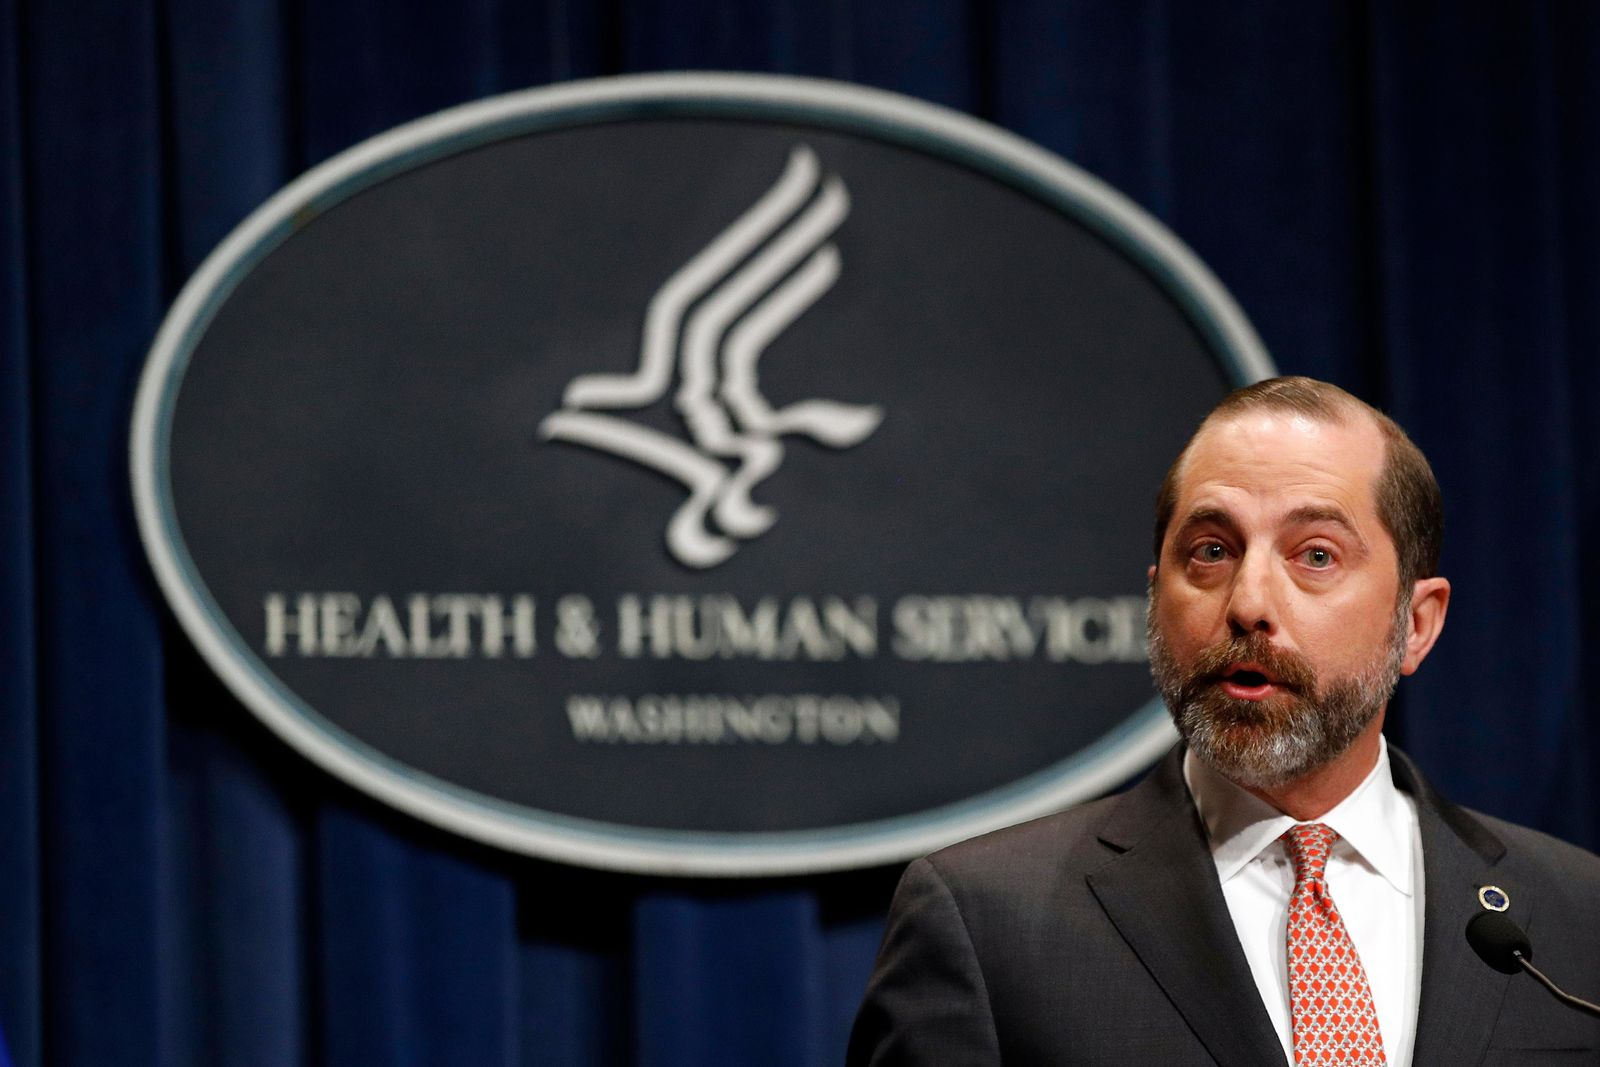 Health and Human Services Secretary Alex Azar speaks at a news conference about the federal government's response to a virus outbreak originating in China, Tuesday, Jan. 28, 2020, in Washington. (AP Photo/Patrick Semansky)